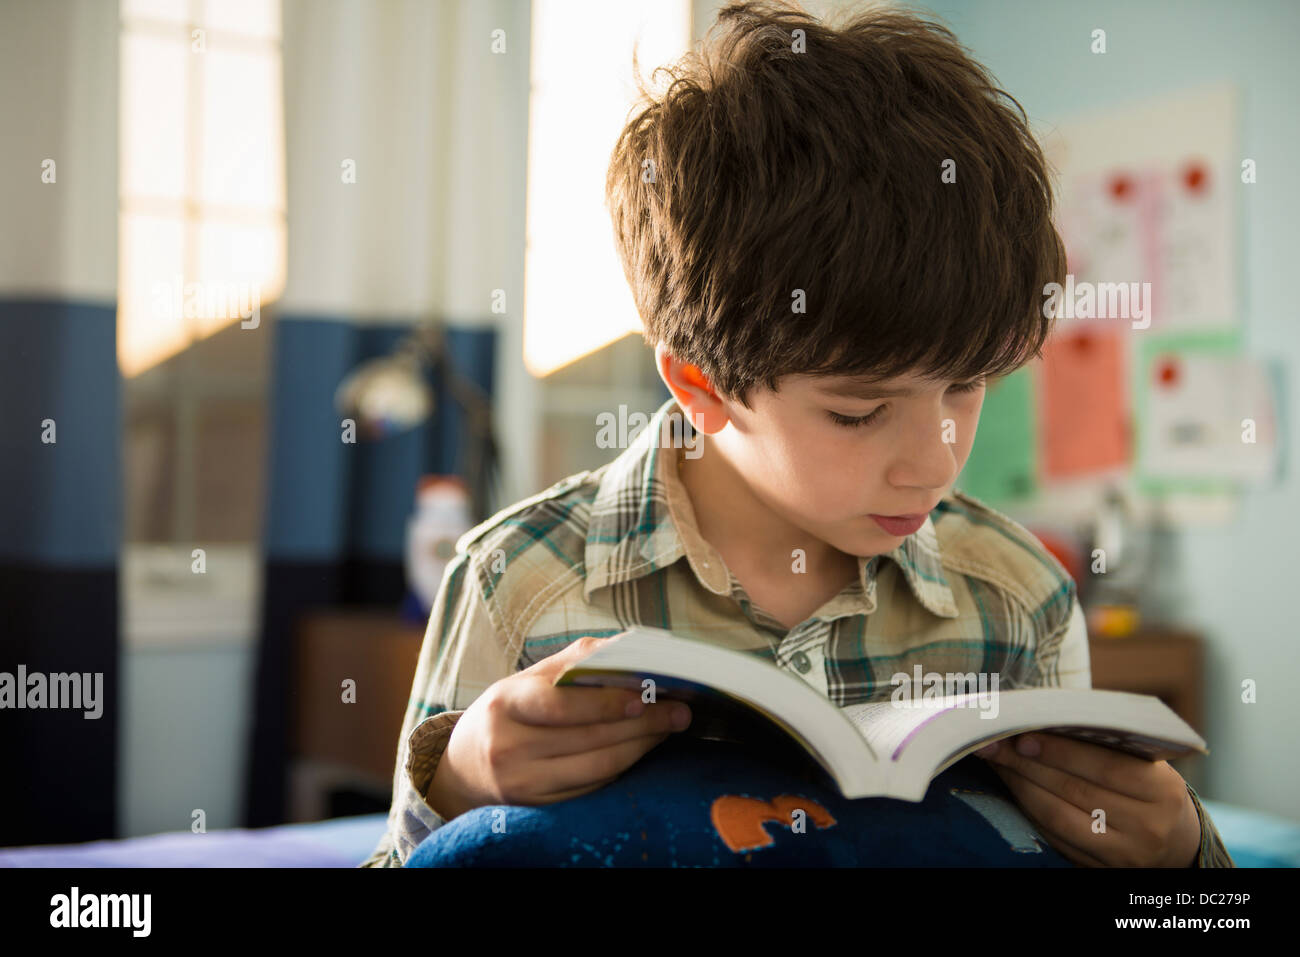 Boy sitting on bed reading book Photo Stock